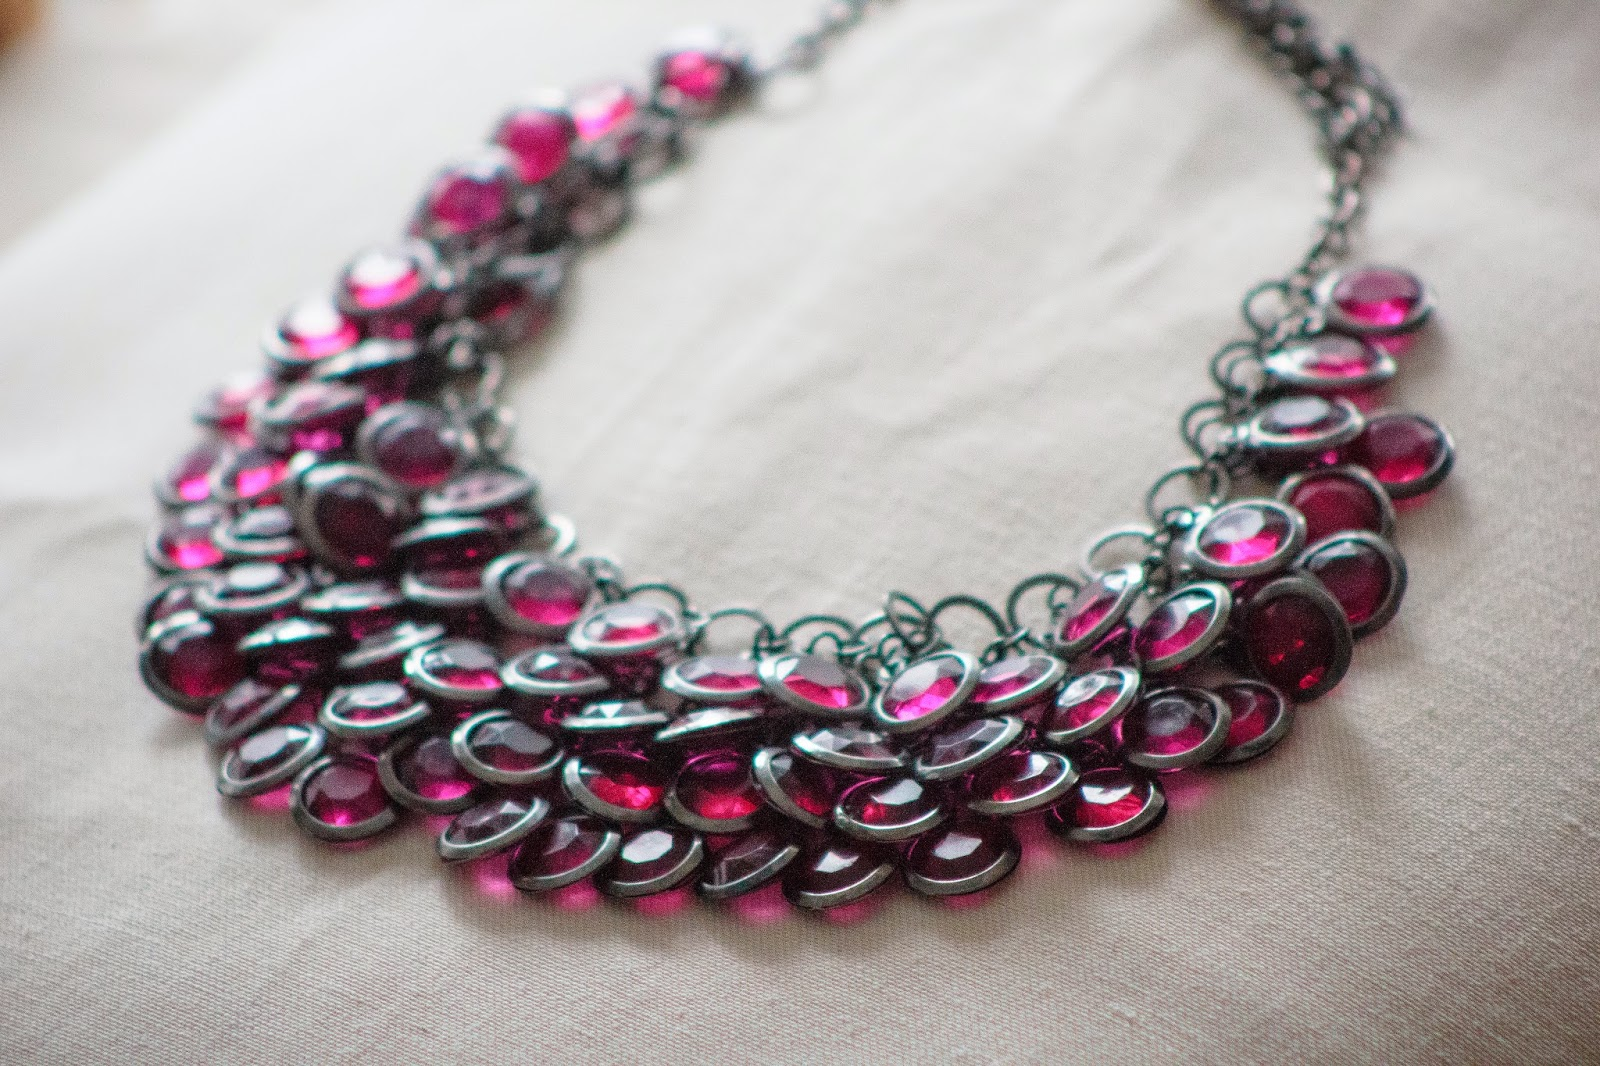 ACCESSOIRE: PURPLE CHAIN PRIZMAHFASHION